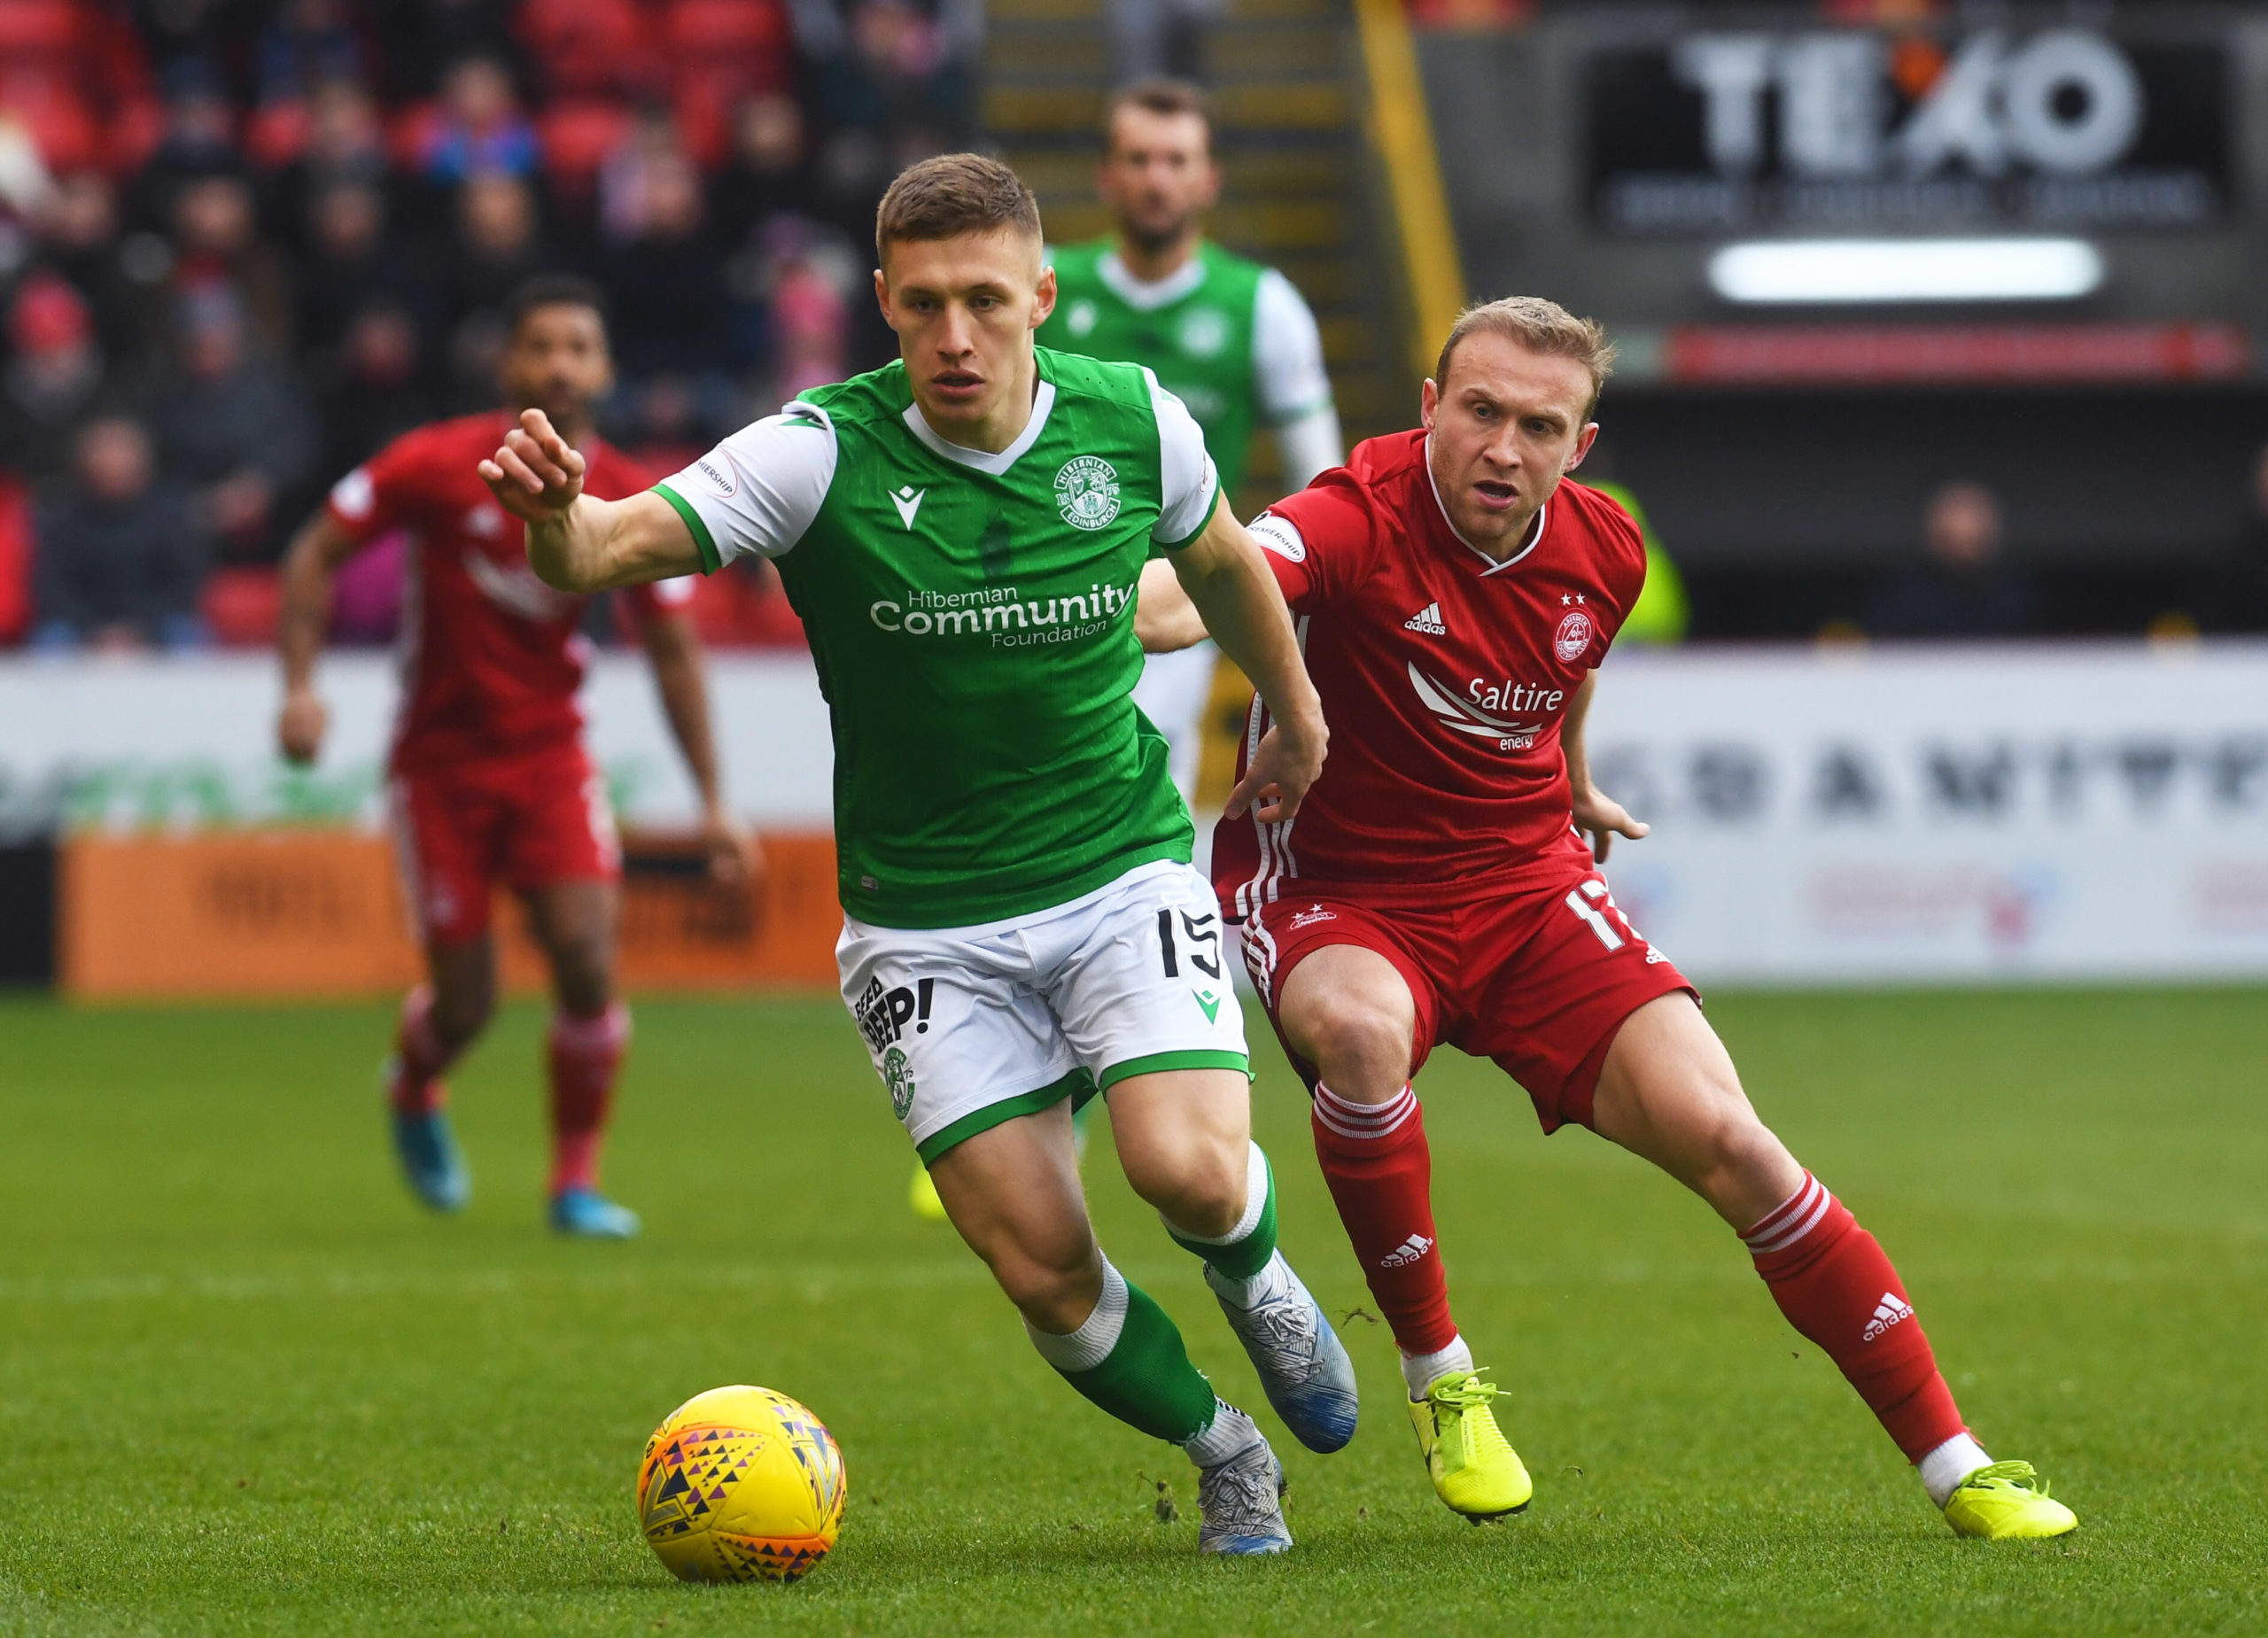 Aberdeen's last competitive game was close to five months ago.